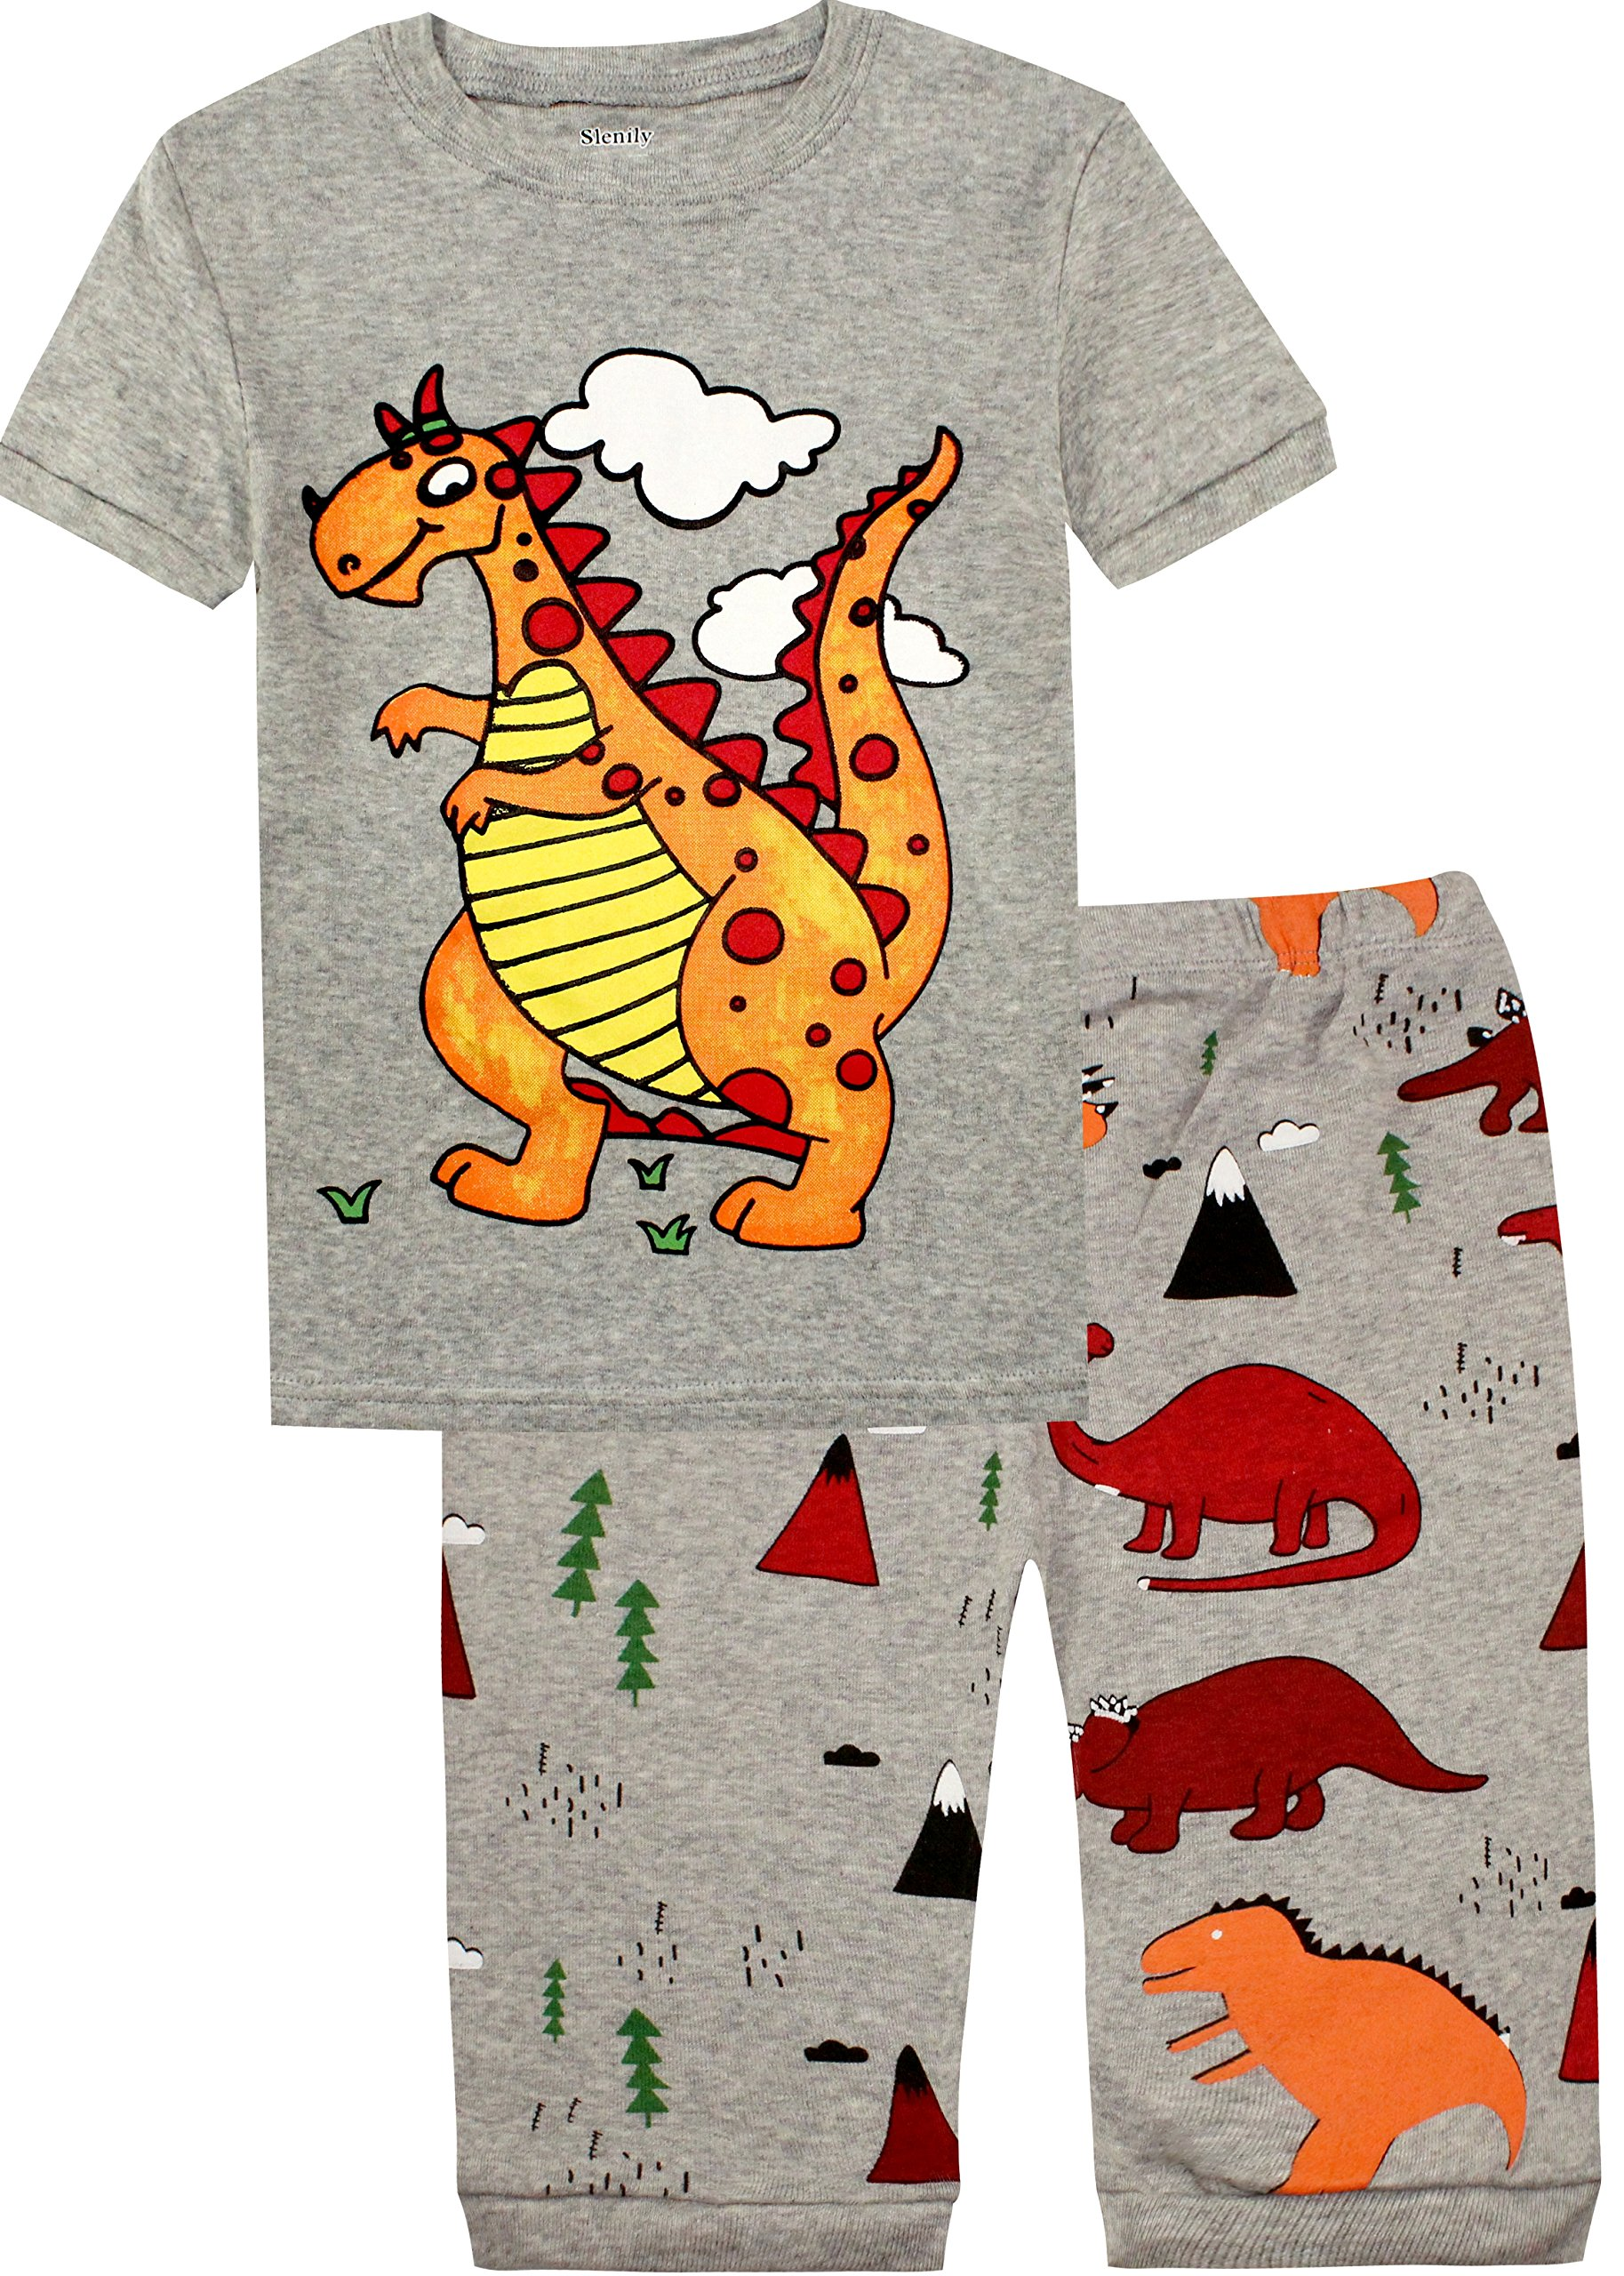 Slenily Boys Cute Dinosaur Pajamas Set 100% Cotton Toddler Kid Nightwear Size 7